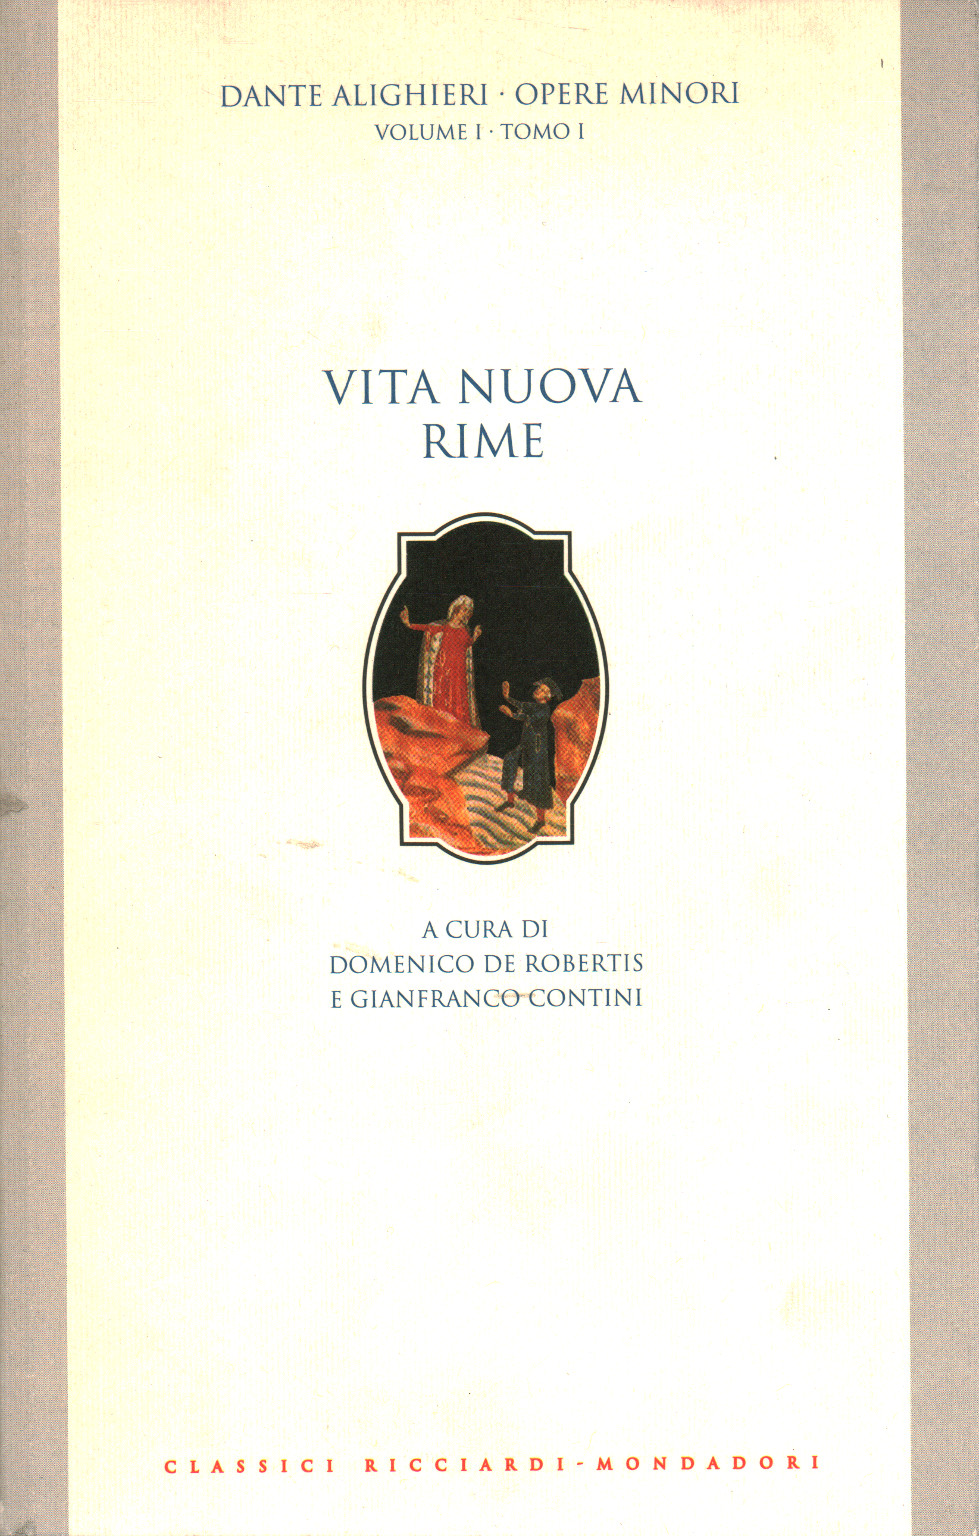 Minor works (volume I, volume I), Dante Alighieri